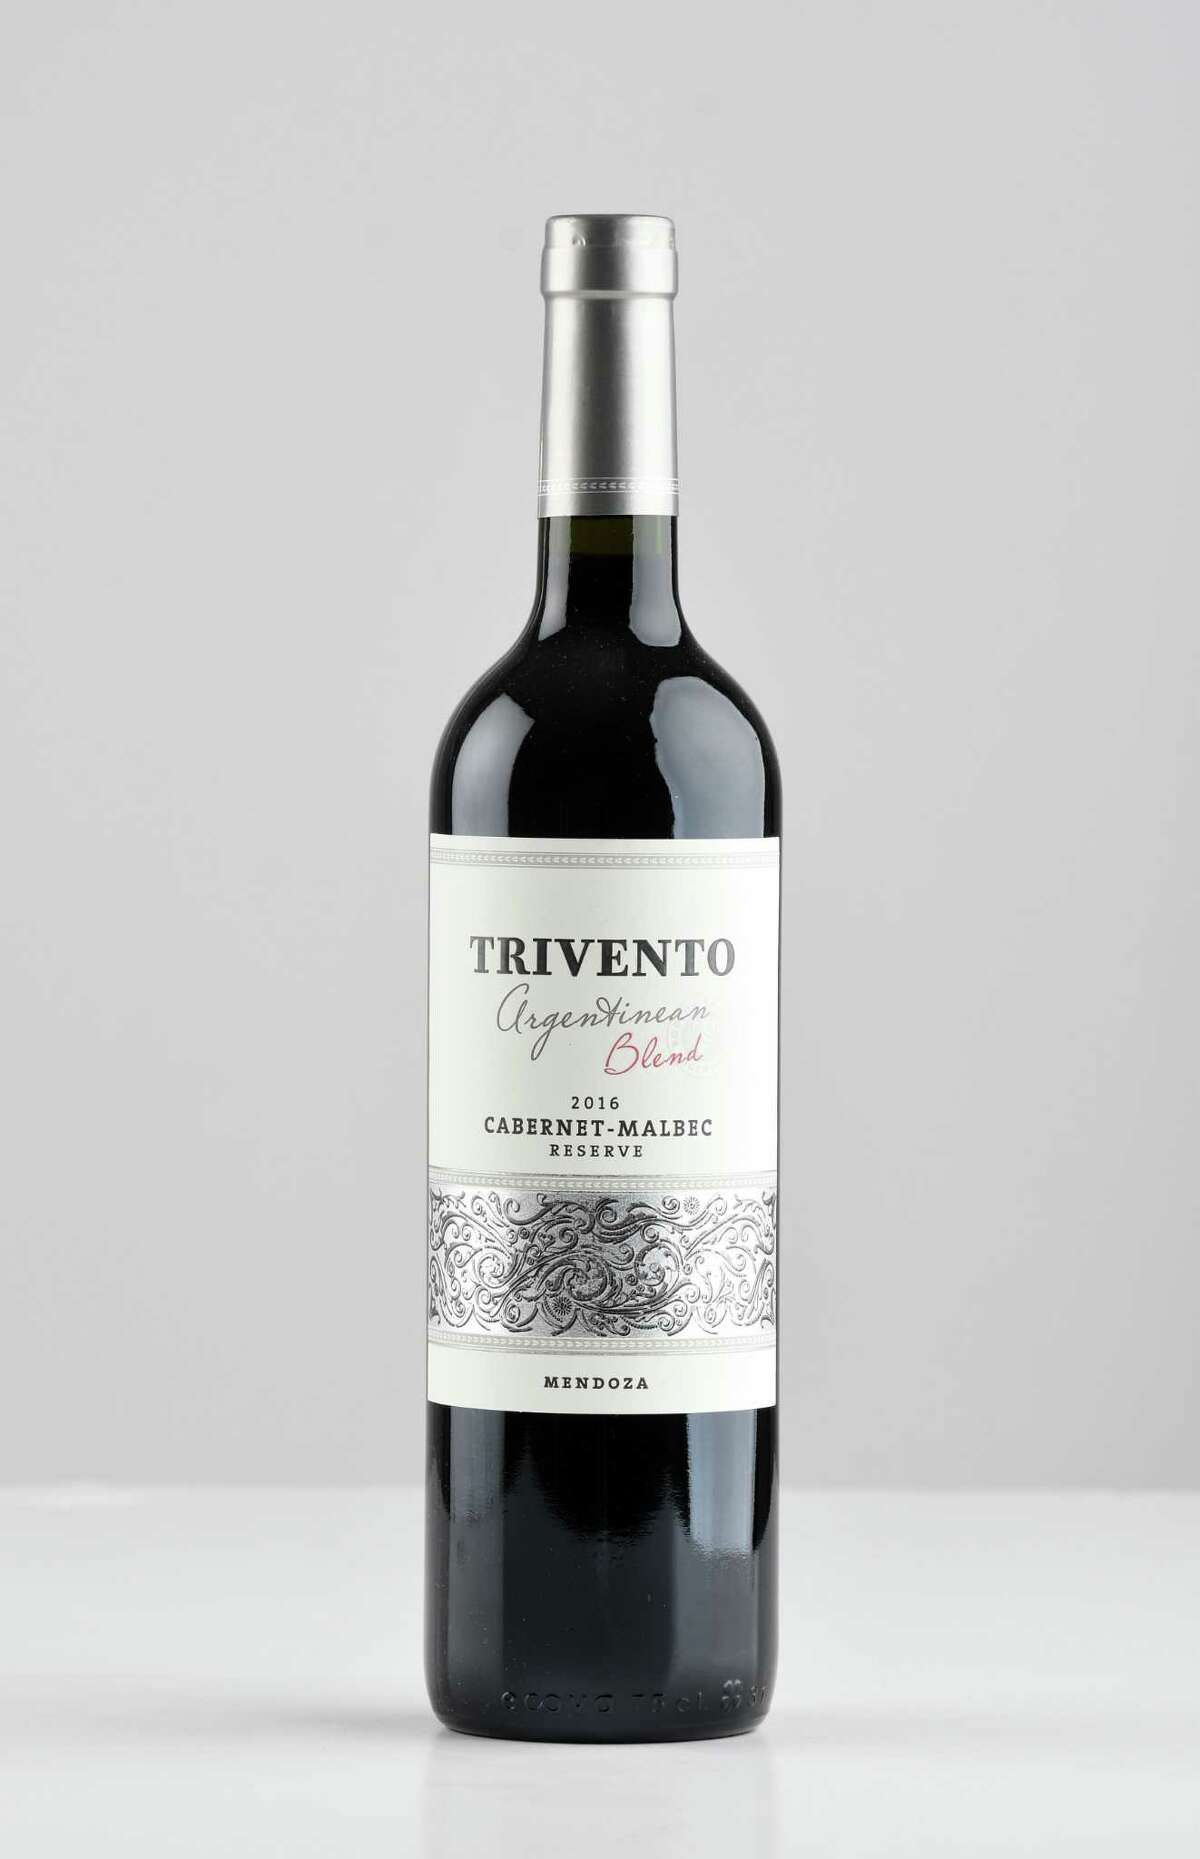 Trivento blend, cabernet-malbec on Thursday, April 26, 2018, at the Times Union in Colonie, N.Y. (Will Waldron/Times Union)